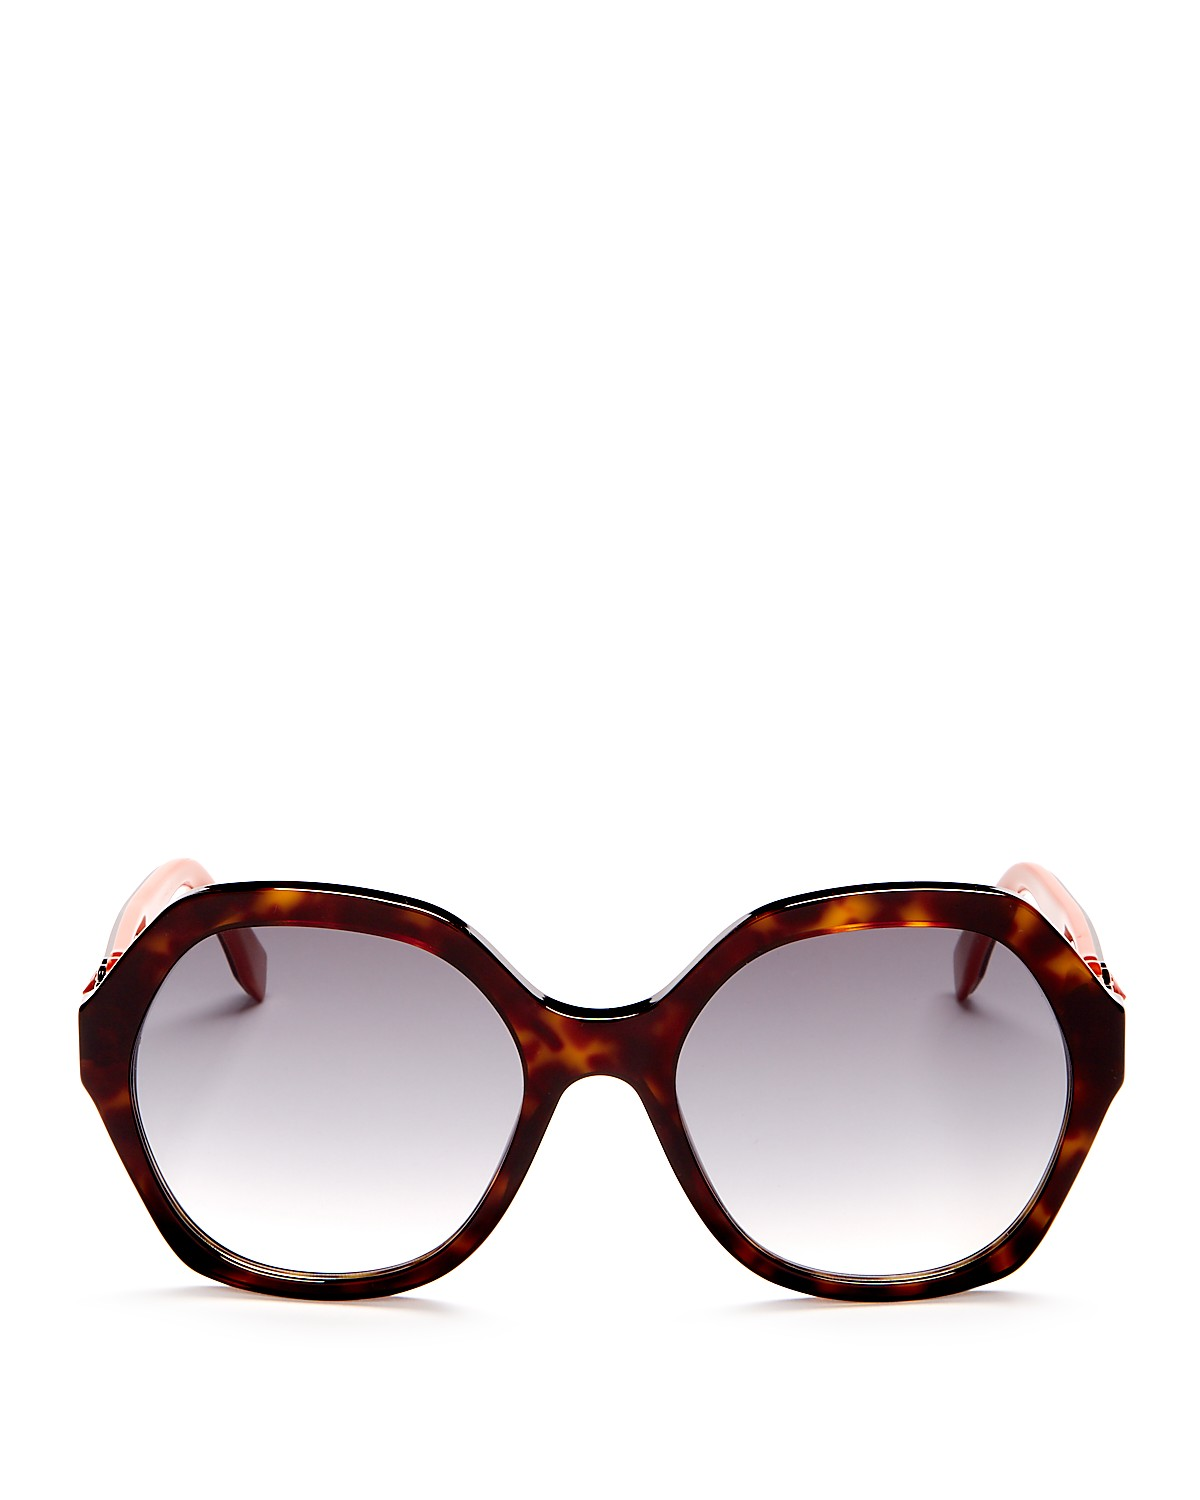 bef116aac7fe1 Fendi. Oversized Round Sunglasses